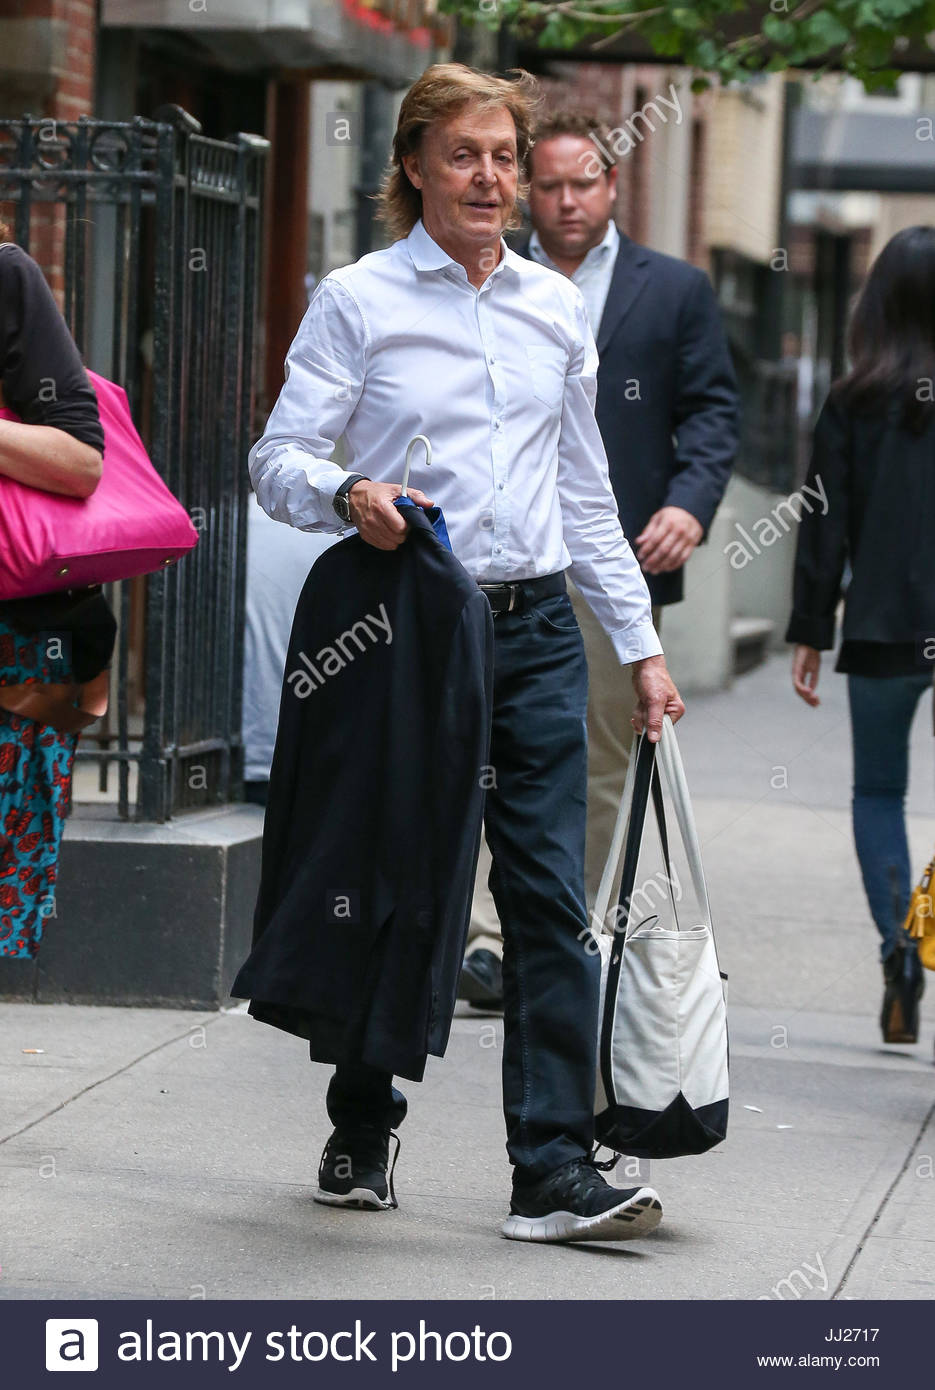 Paul McCartney With His Daughter Beatrice Leaving A Building In Manhattan New York City